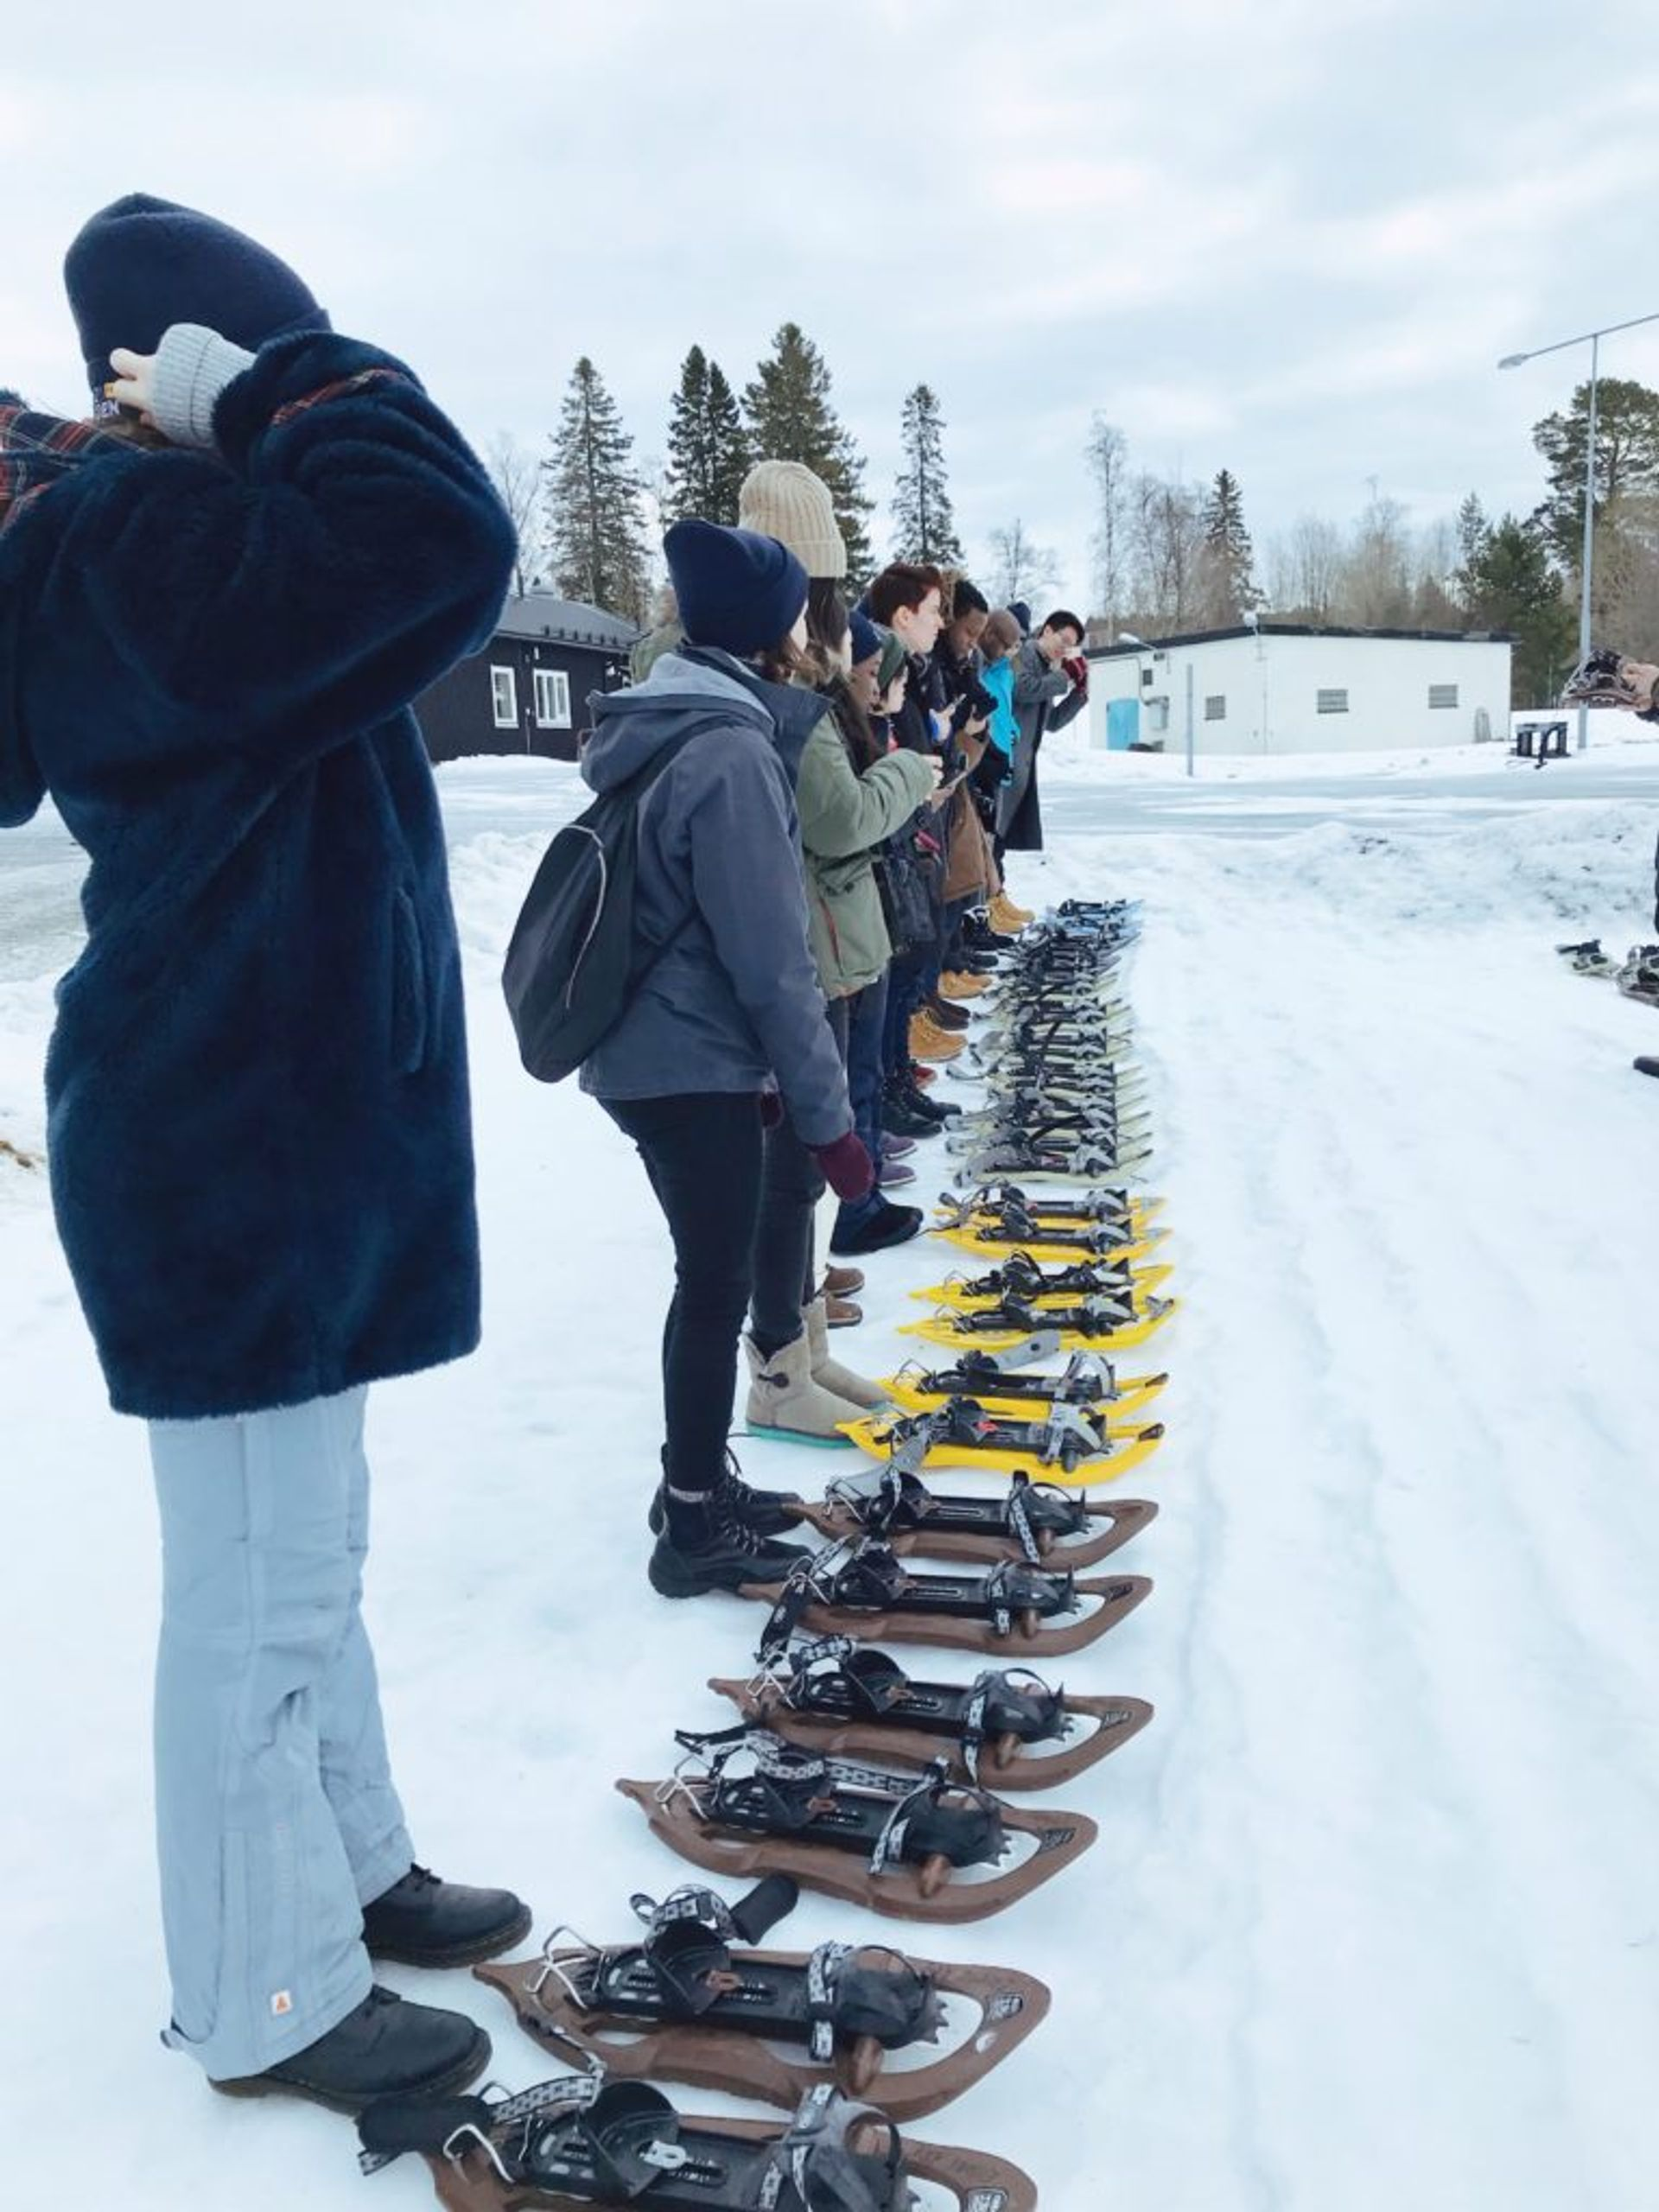 Students standing in a line with snowshoes set out in front of them. Some are taking photos of the snowshoes.